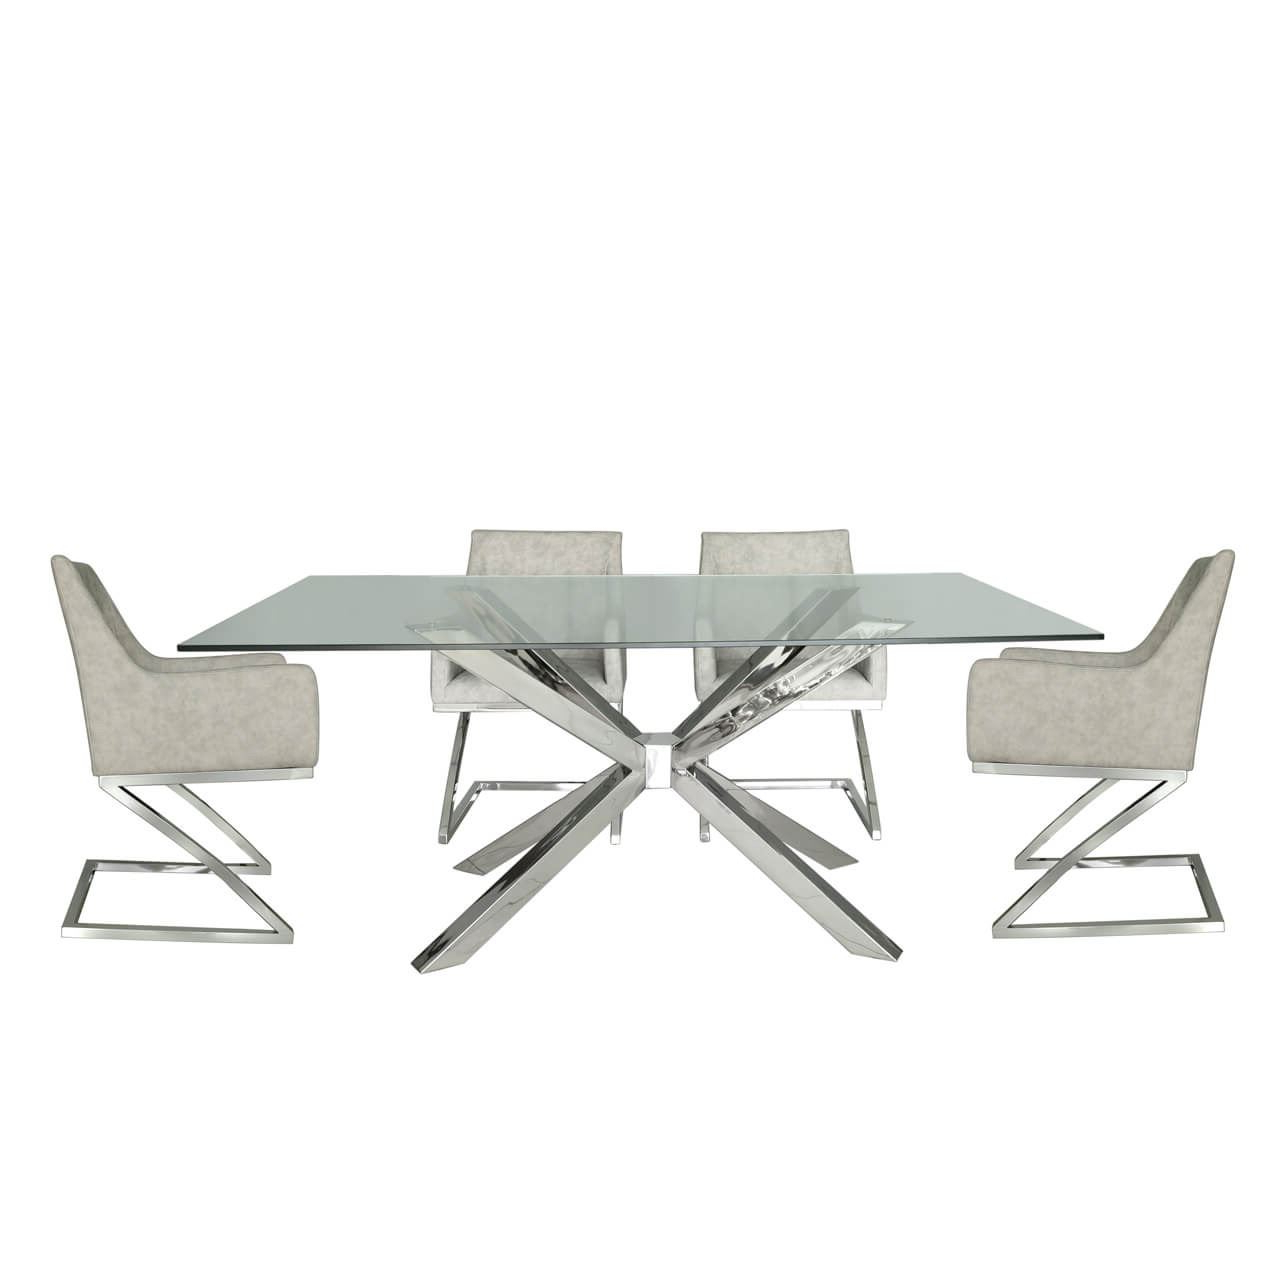 Details About Tempered Glass Steel Chrome Chrome And Glass Dining Table & 4  Light Grey Chairs within Famous Chrome Dining Tables With Tempered Glass